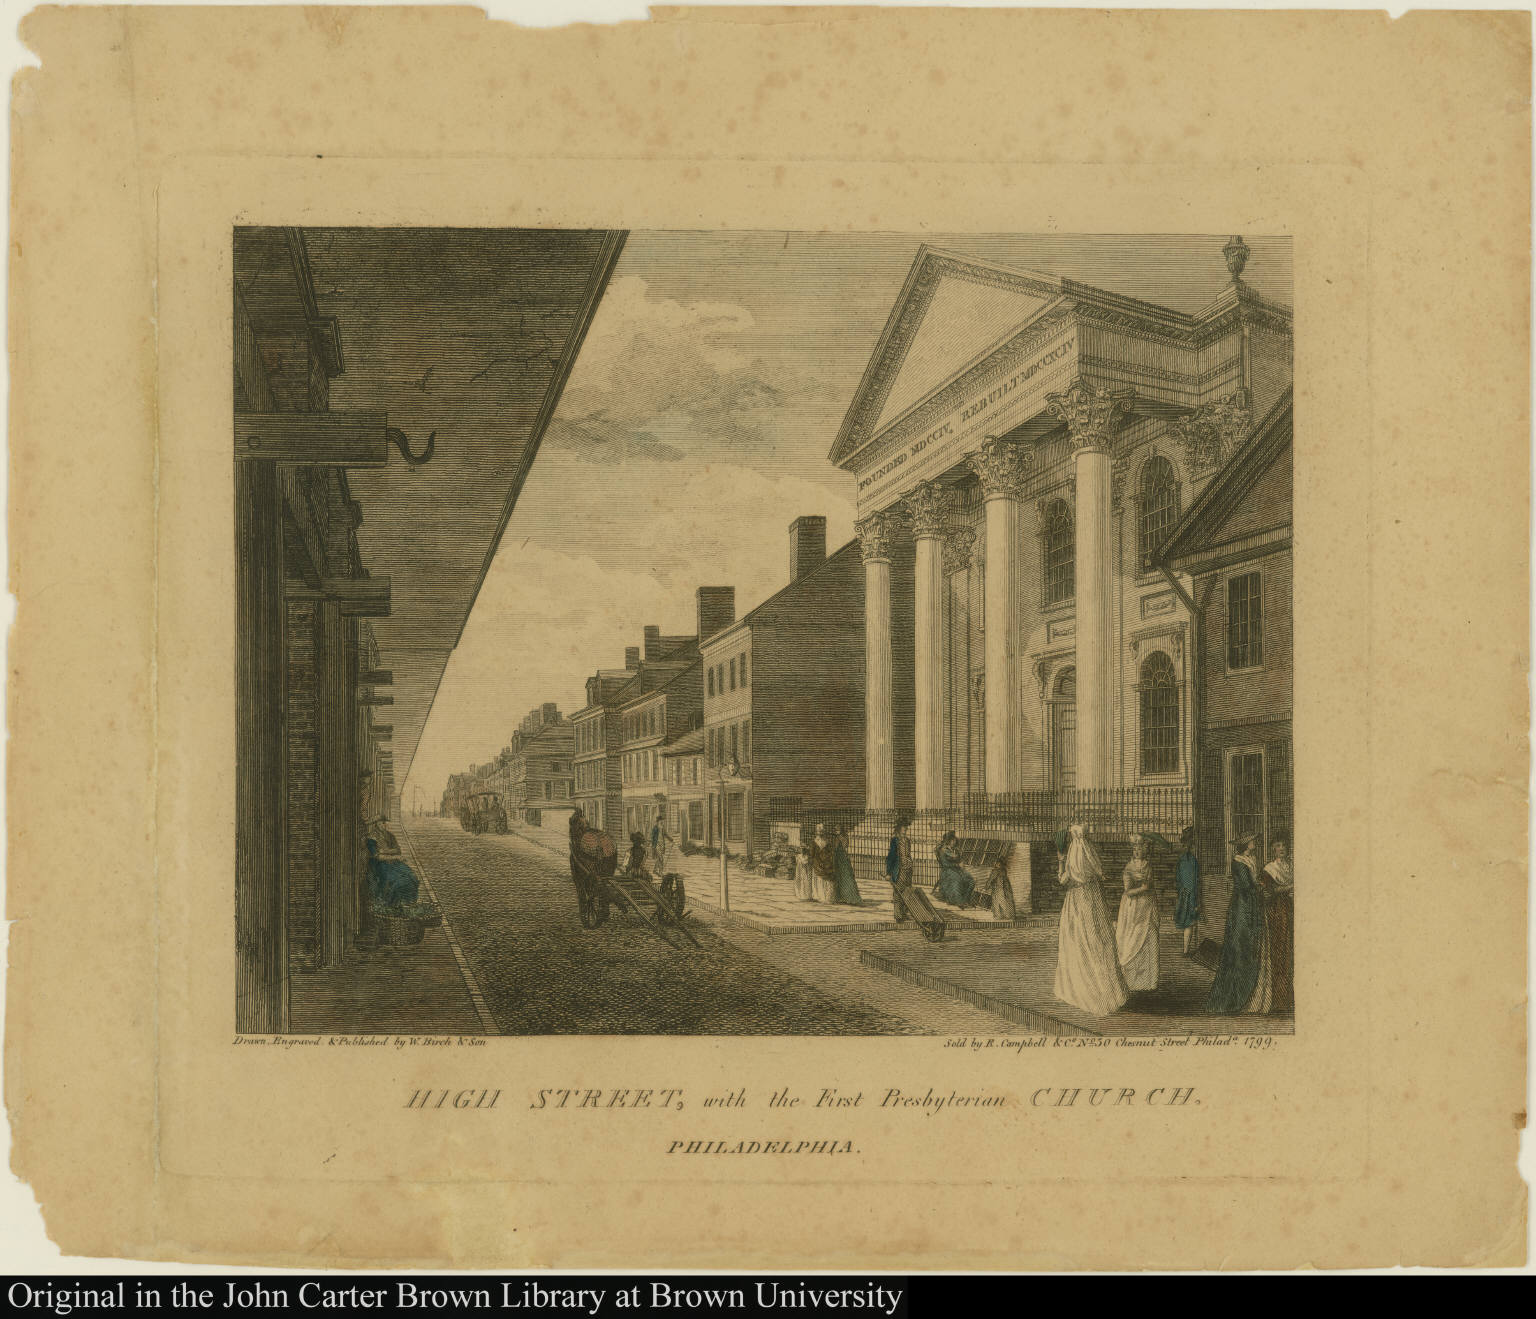 High Street, with the First Presbyterian Church. Philadelphia